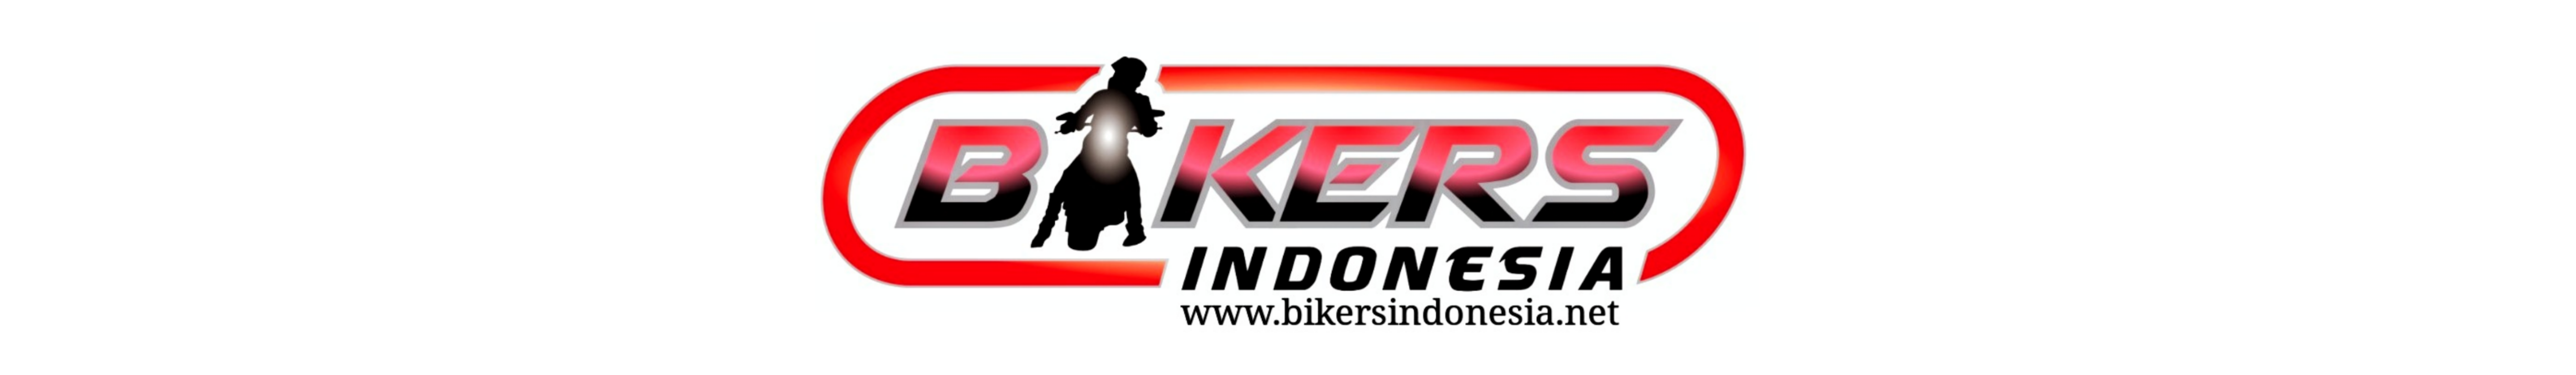 Bikers Indonesia